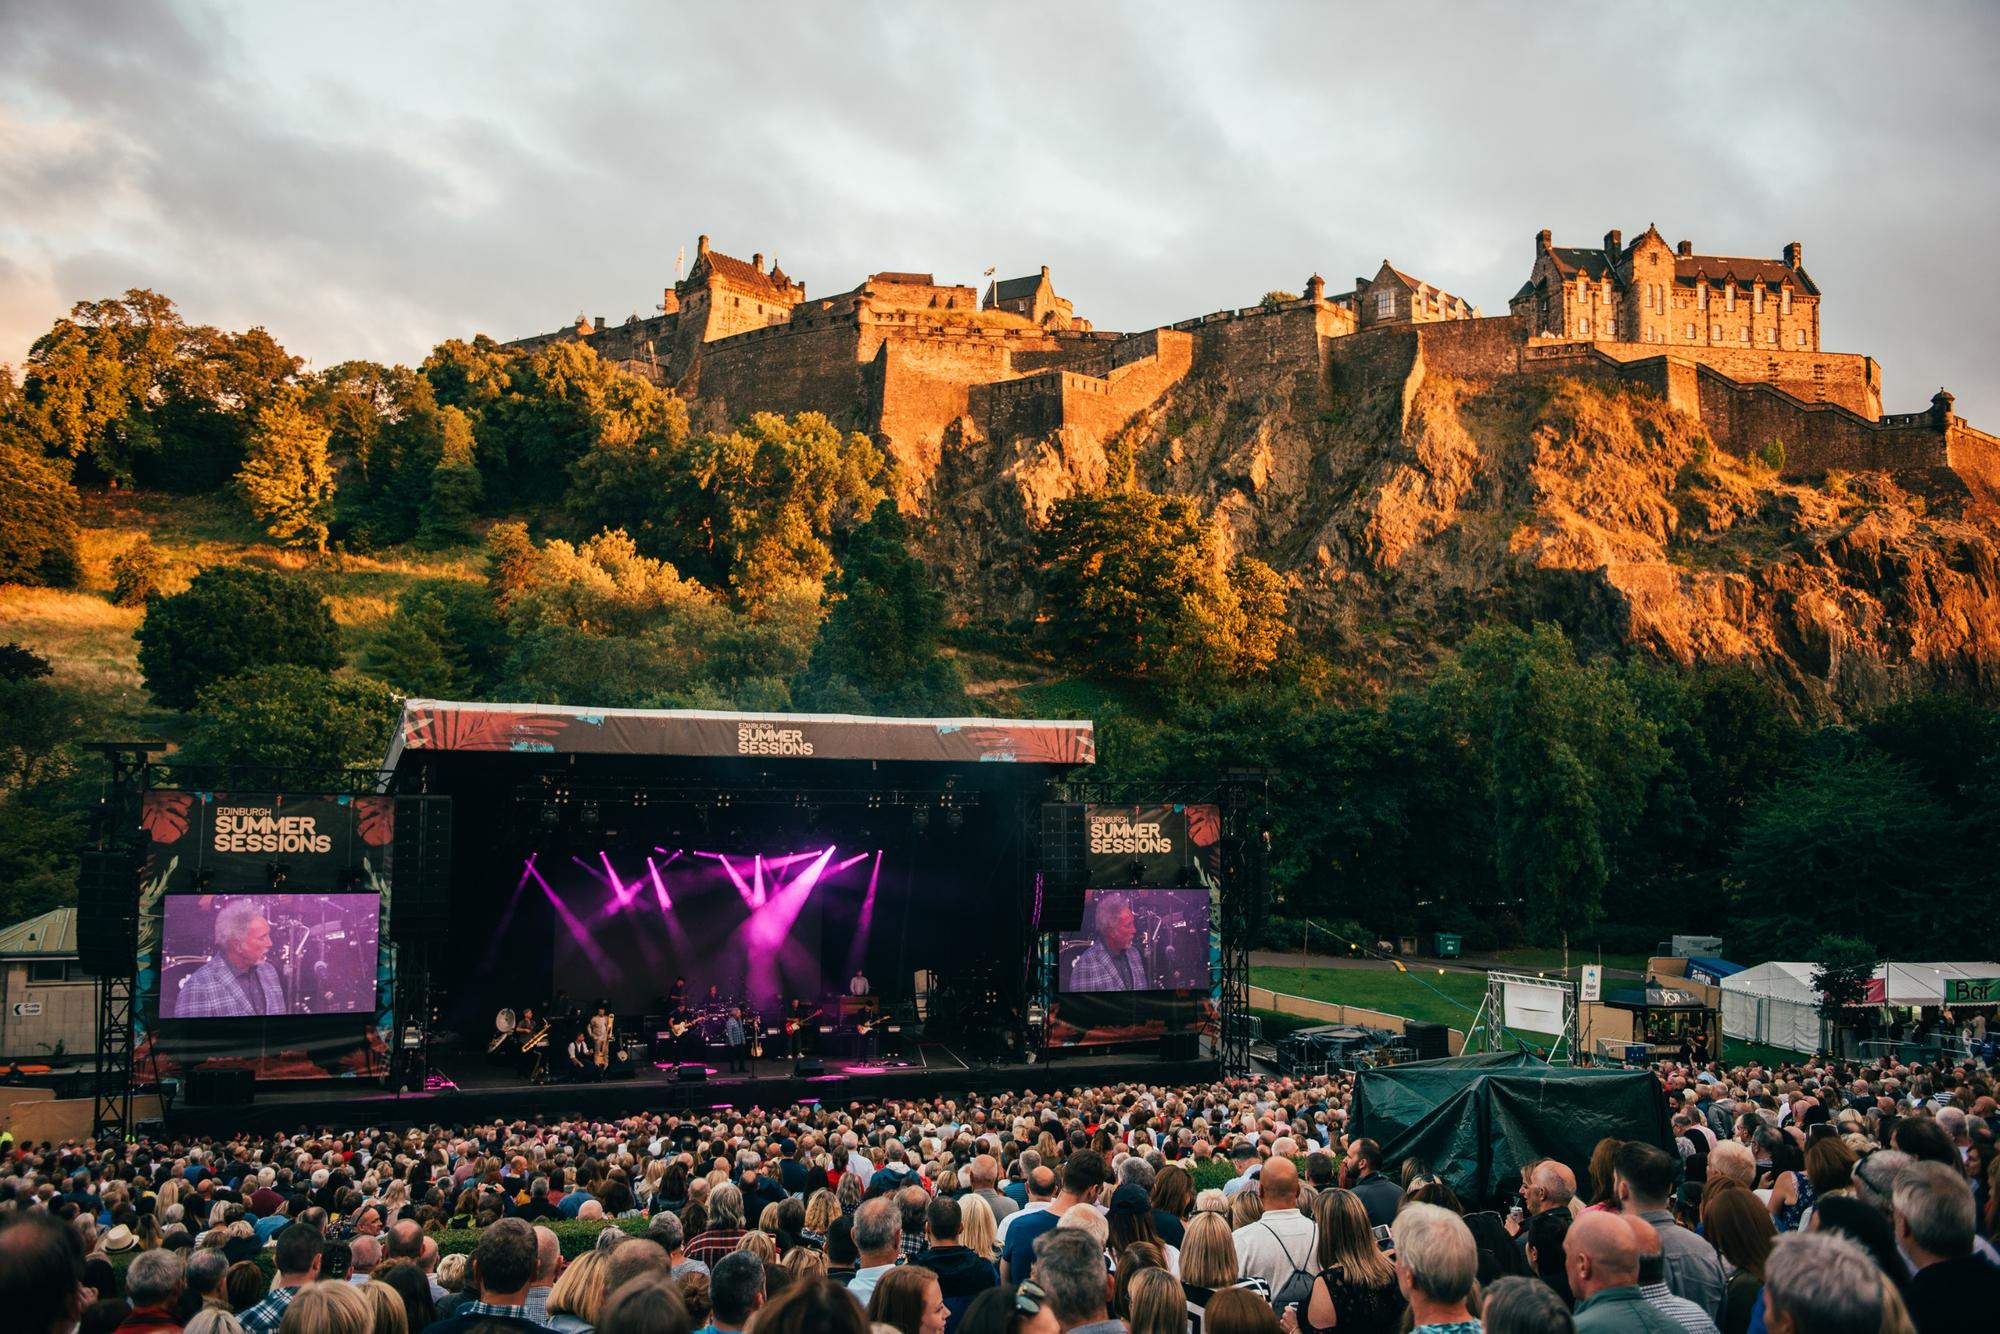 Plug To Be Pulled On Edinburgh Summer Sessions Concerts For 12 Months The Scotsman